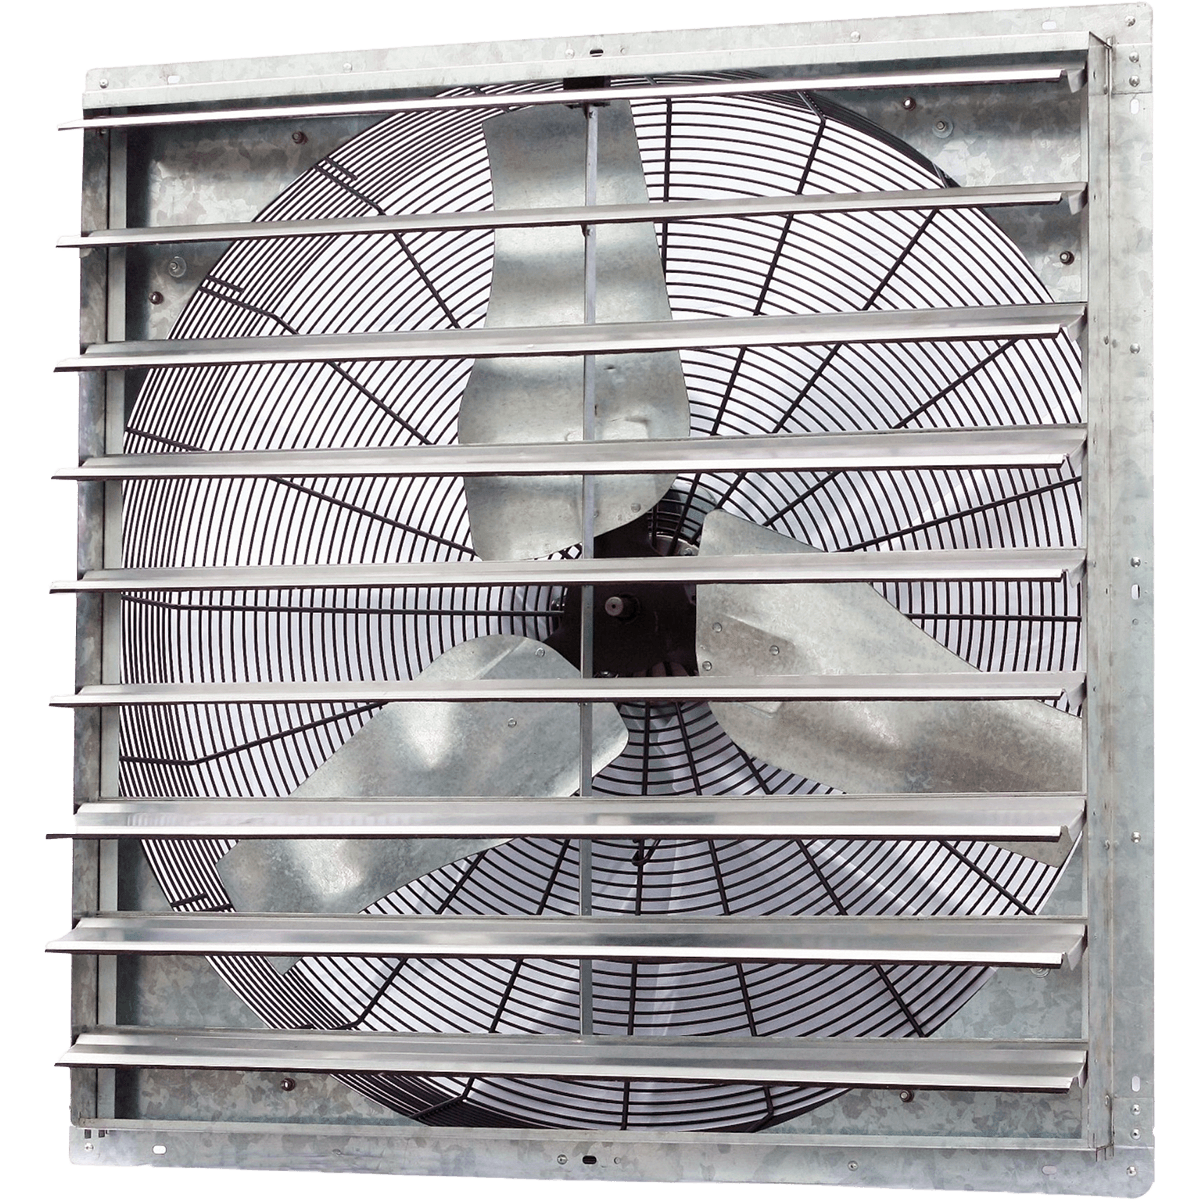 Buy Cheap Iliving 36 Inch Single Speed Wall Mounted Shutter Exhaust Fan In 2020 With Images Exhaust Fan Wall Mounted Exhaust Fan Bathroom Fan